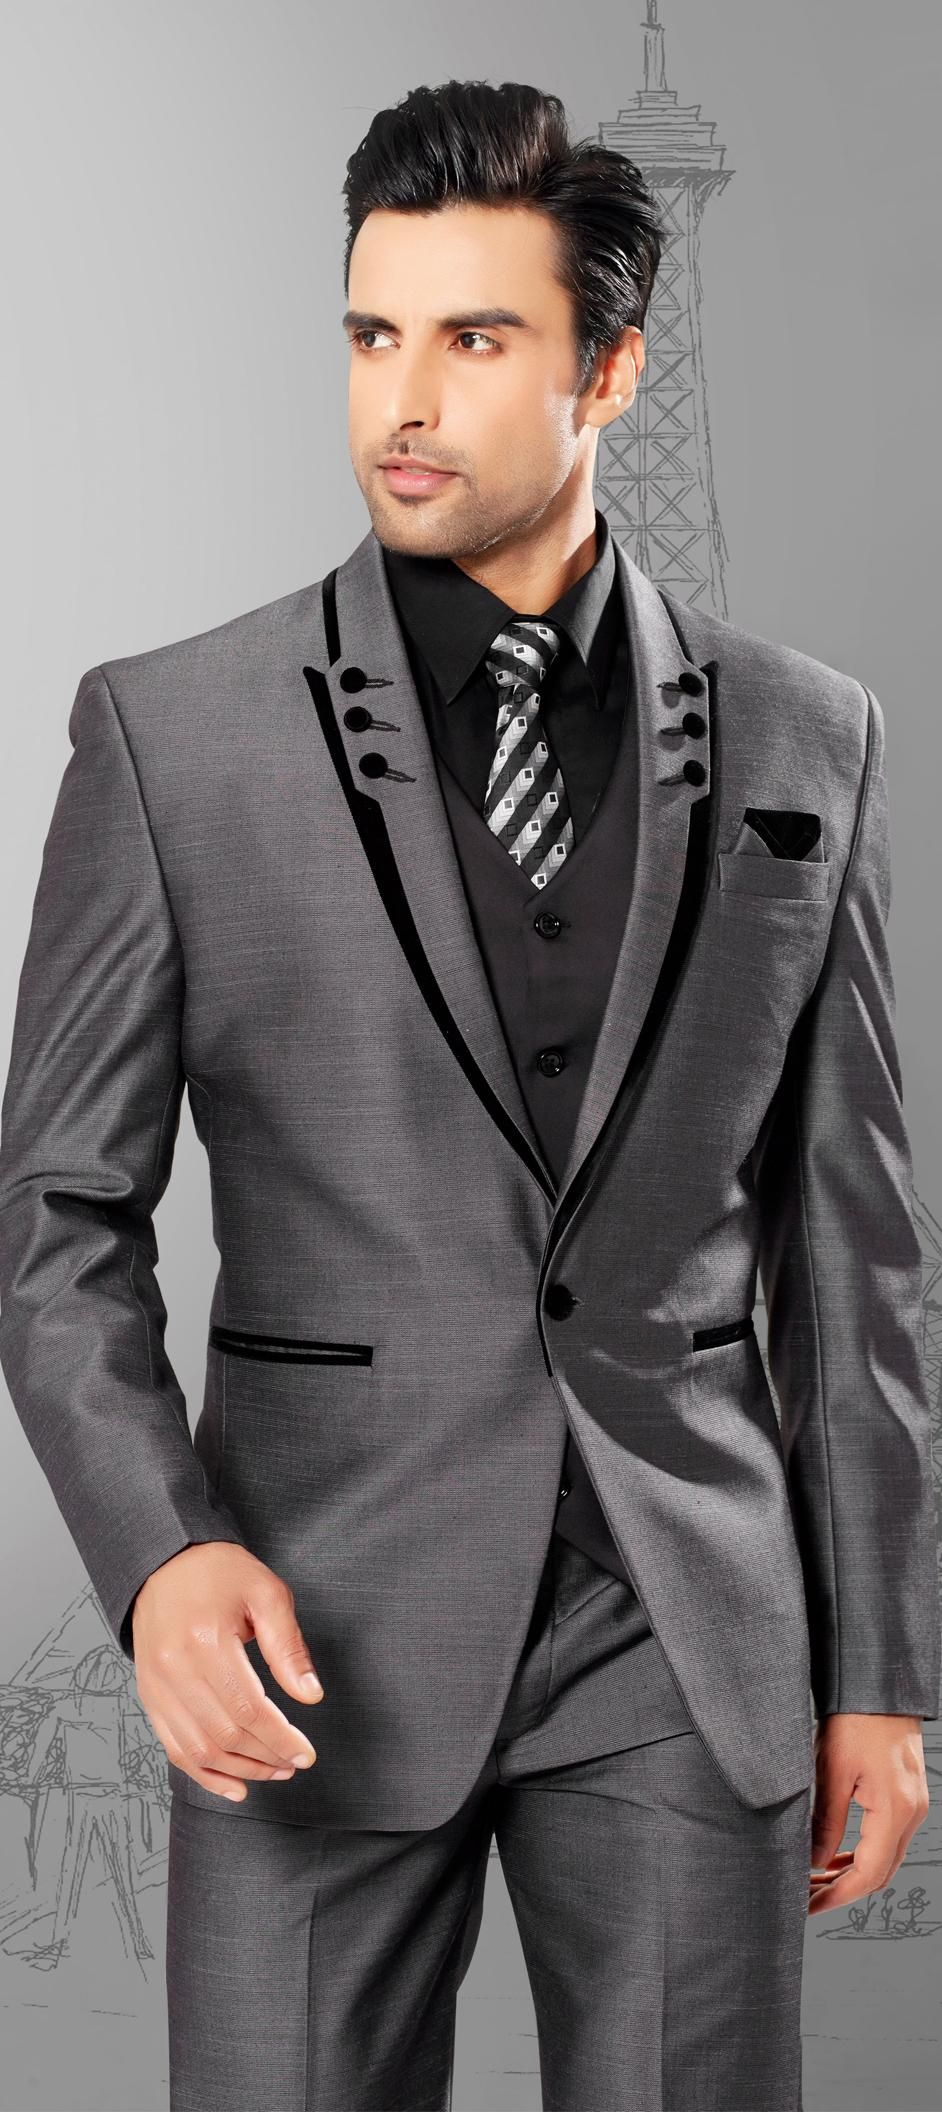 Wedding Suits For Men Inspiration For Male | Men's suits, Weddings ...